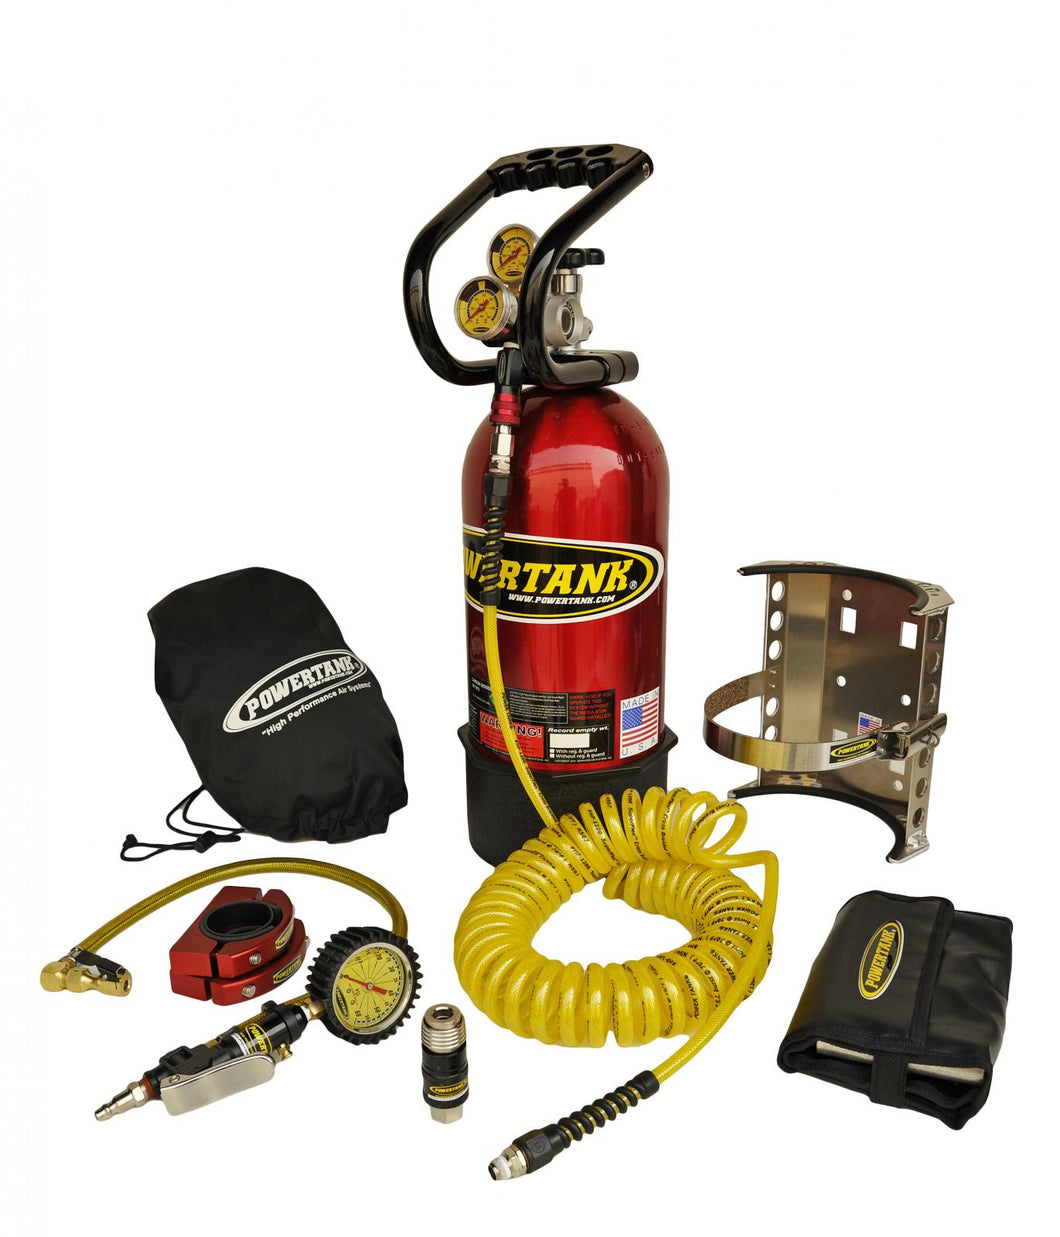 CO2 Tank 10 LB Package C System 400 PSI W/Power Flow II and Roll Bar Clamps Candy Red Power Tank